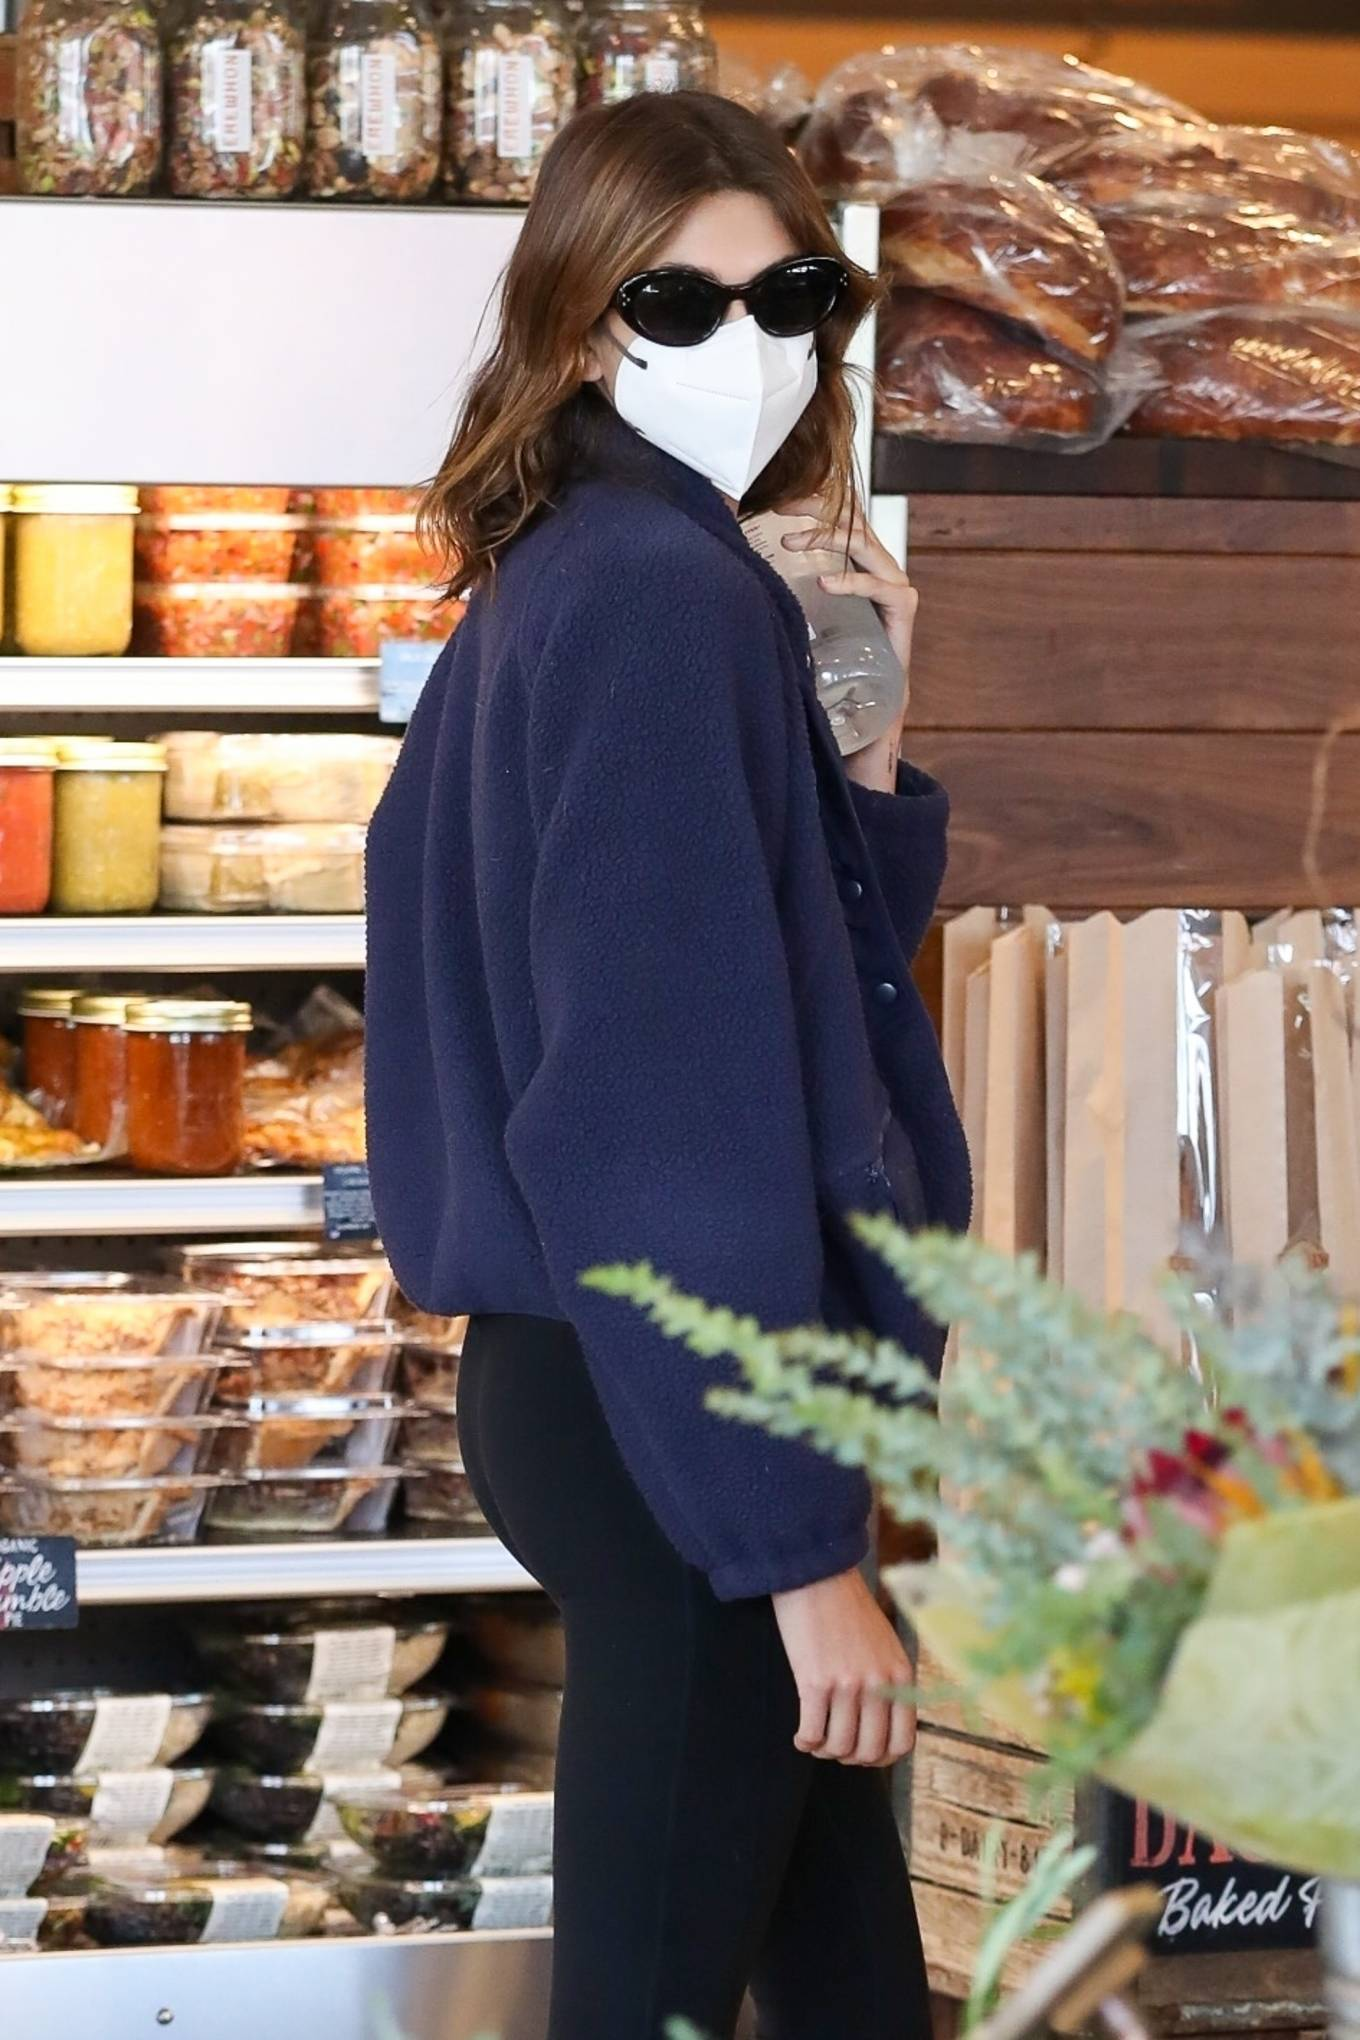 Kaia Gerber - Seen at the High-end grocery Erewhon Market in West Hollywood